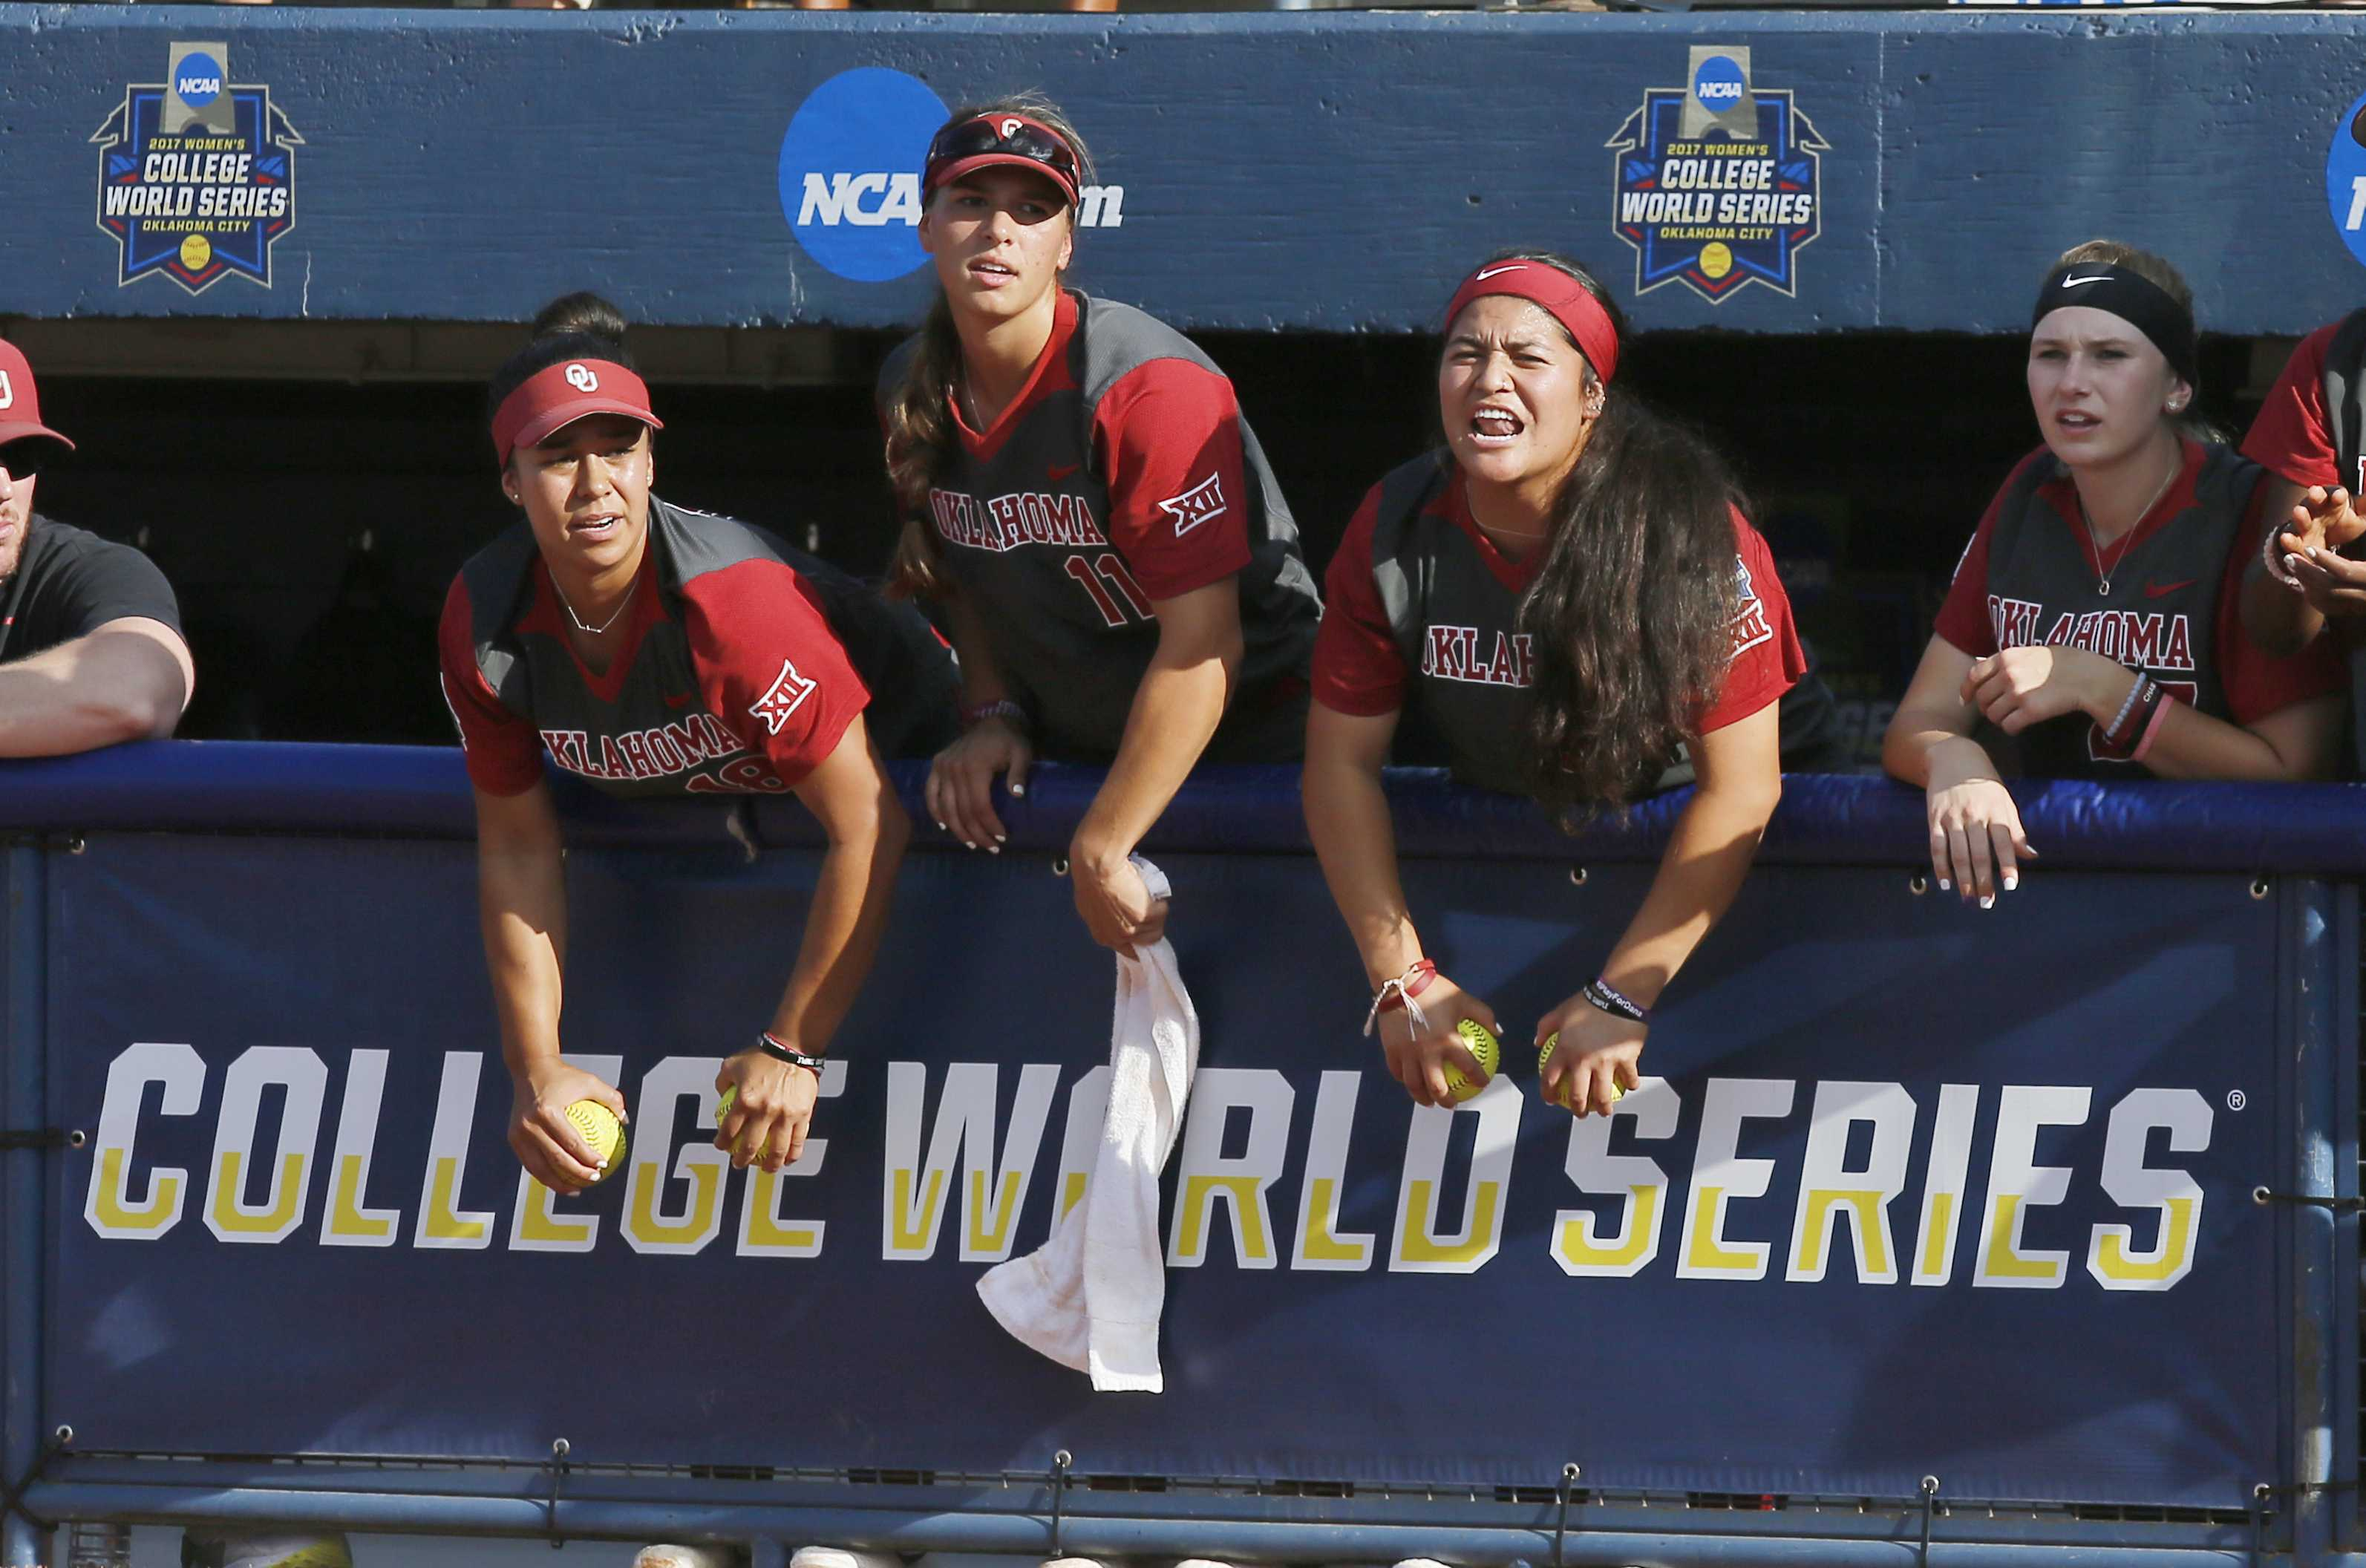 Florida proving hard to beat at Women's College World Series